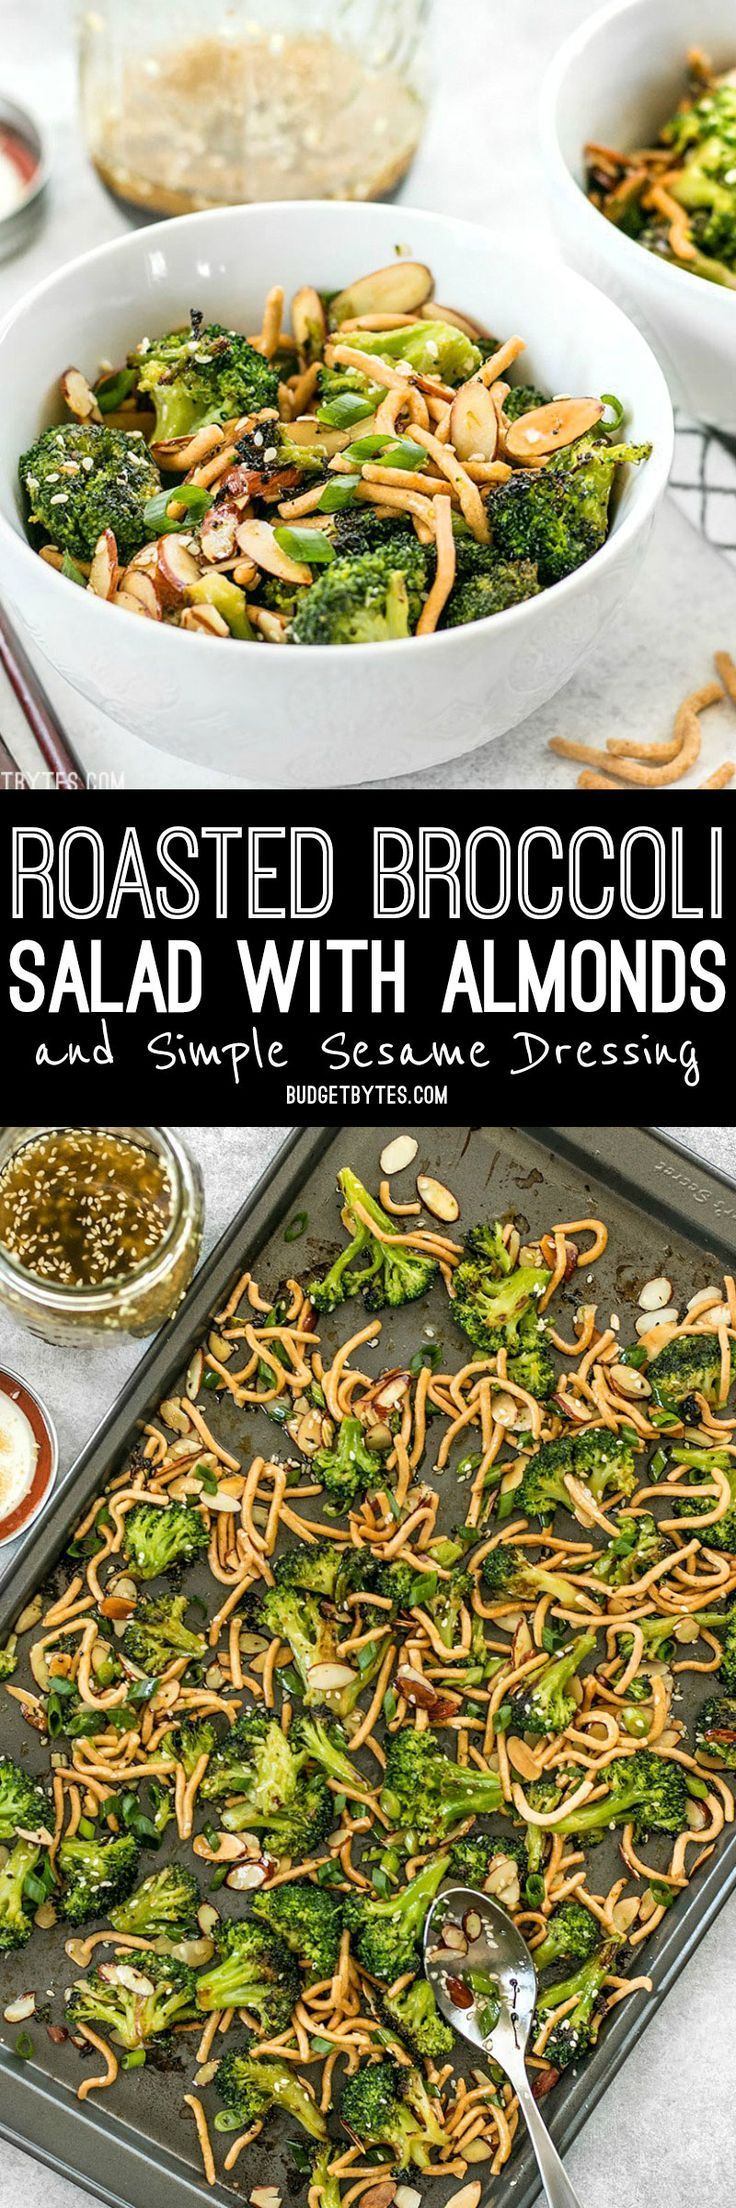 This crunchy, sweet, and salty Roasted Broccoli Salad with Almonds is my favorite way to get my vegetables and goes great with any Asian inspired meal.